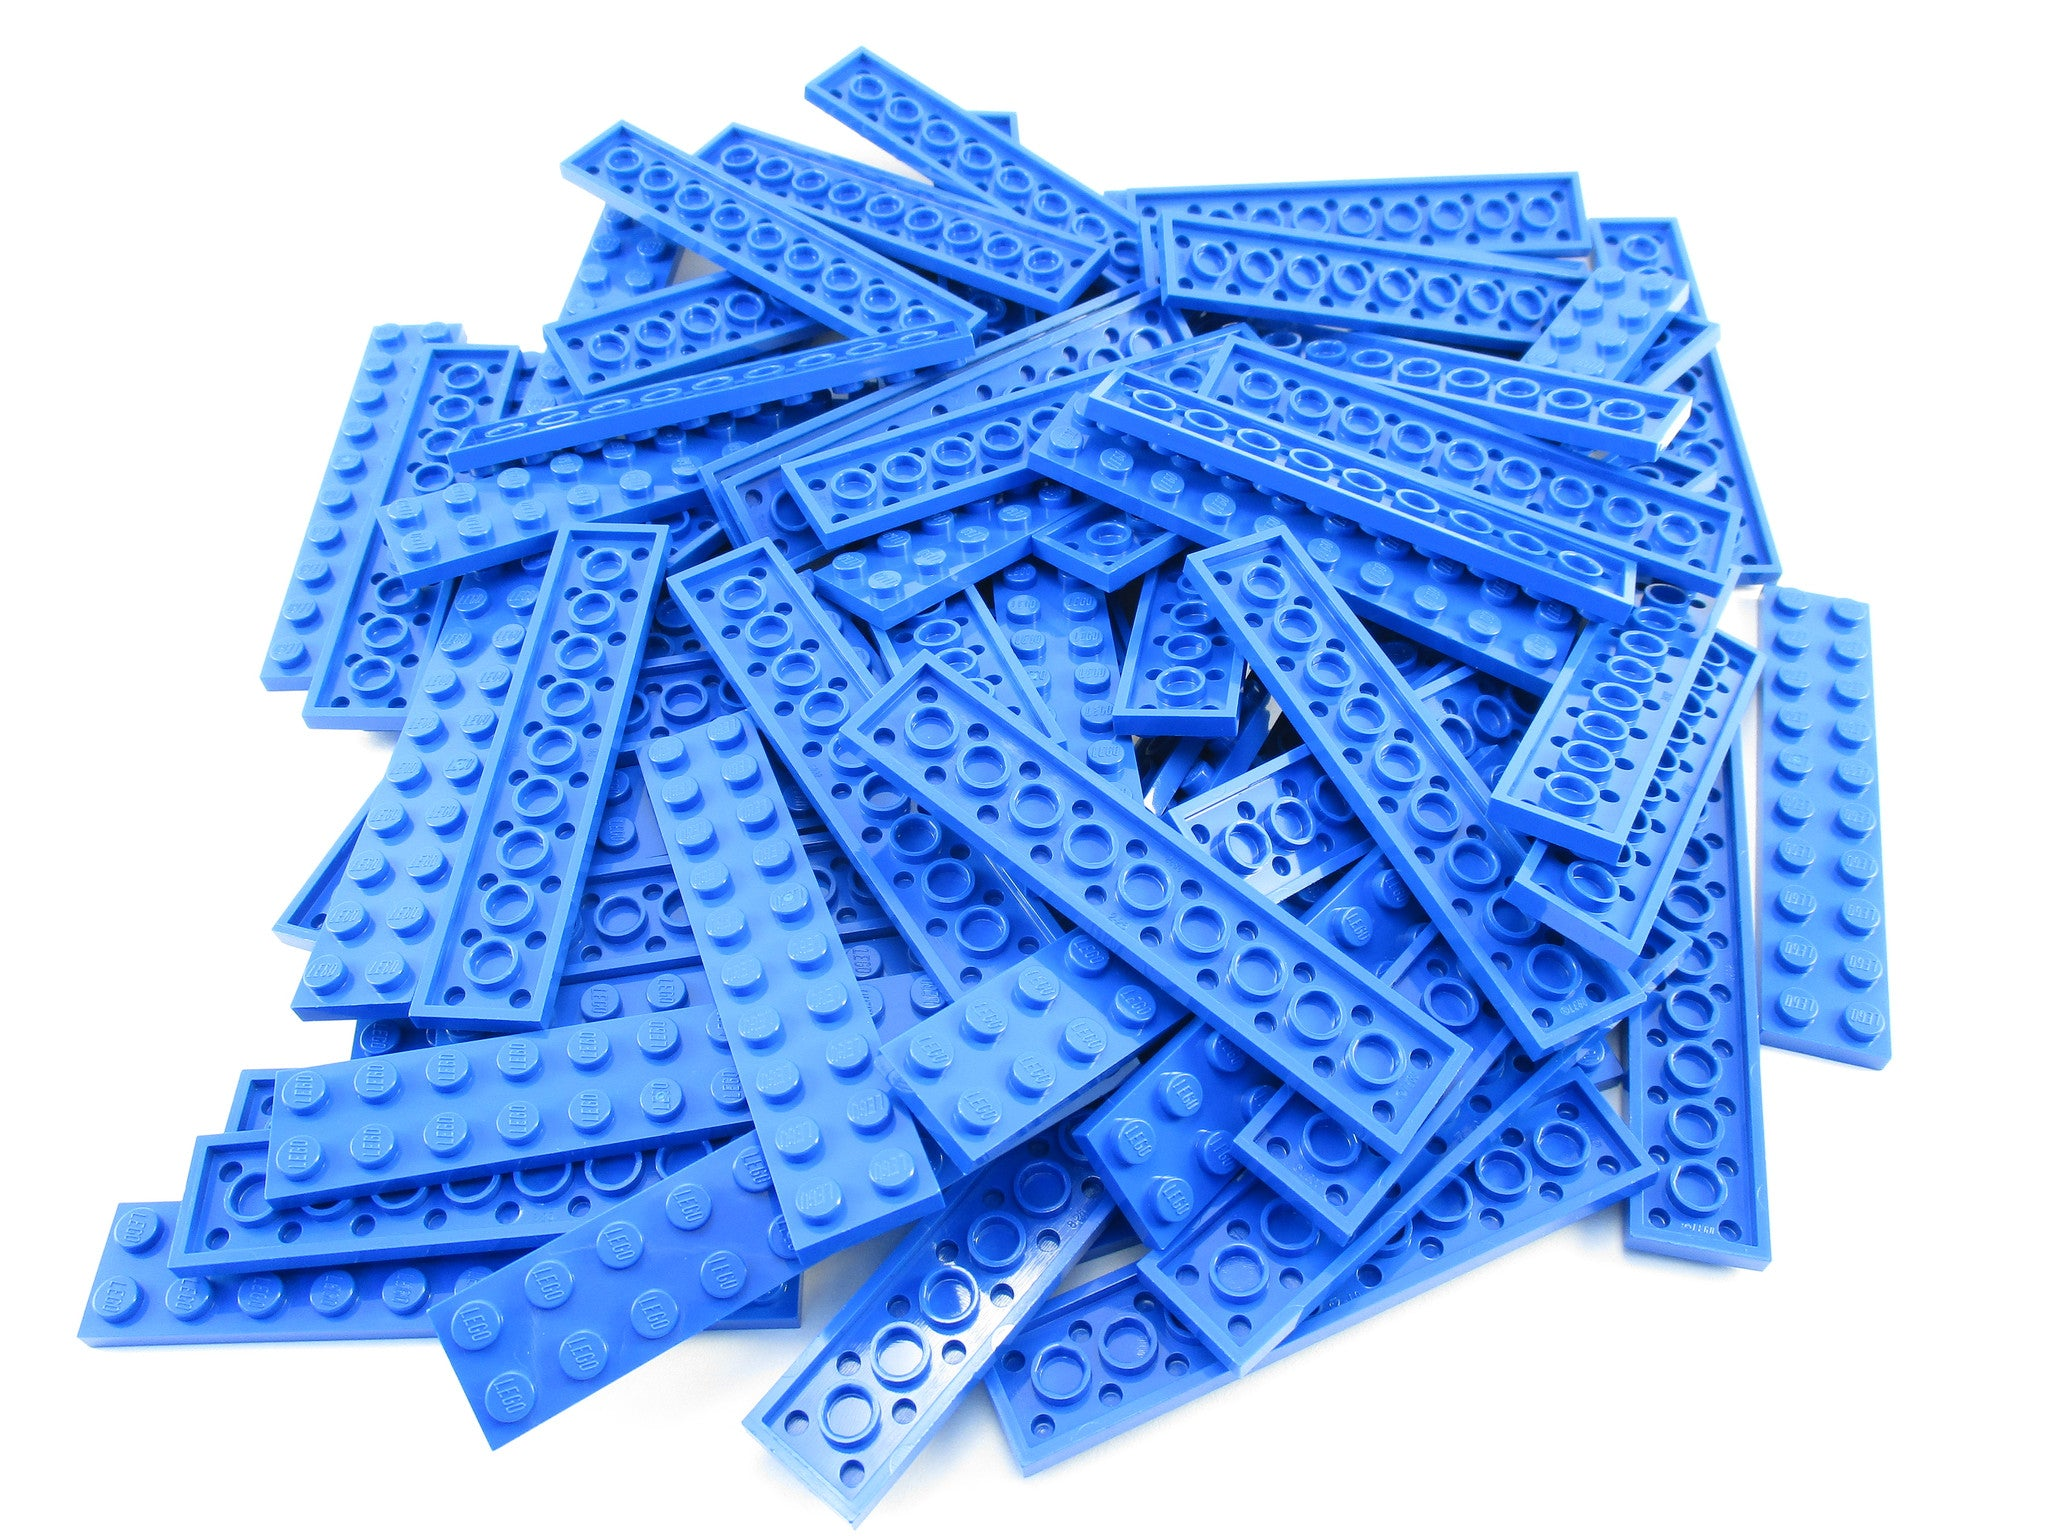 LEGO Blue Plate 2x10 Lot of 50 Parts Pieces 3832